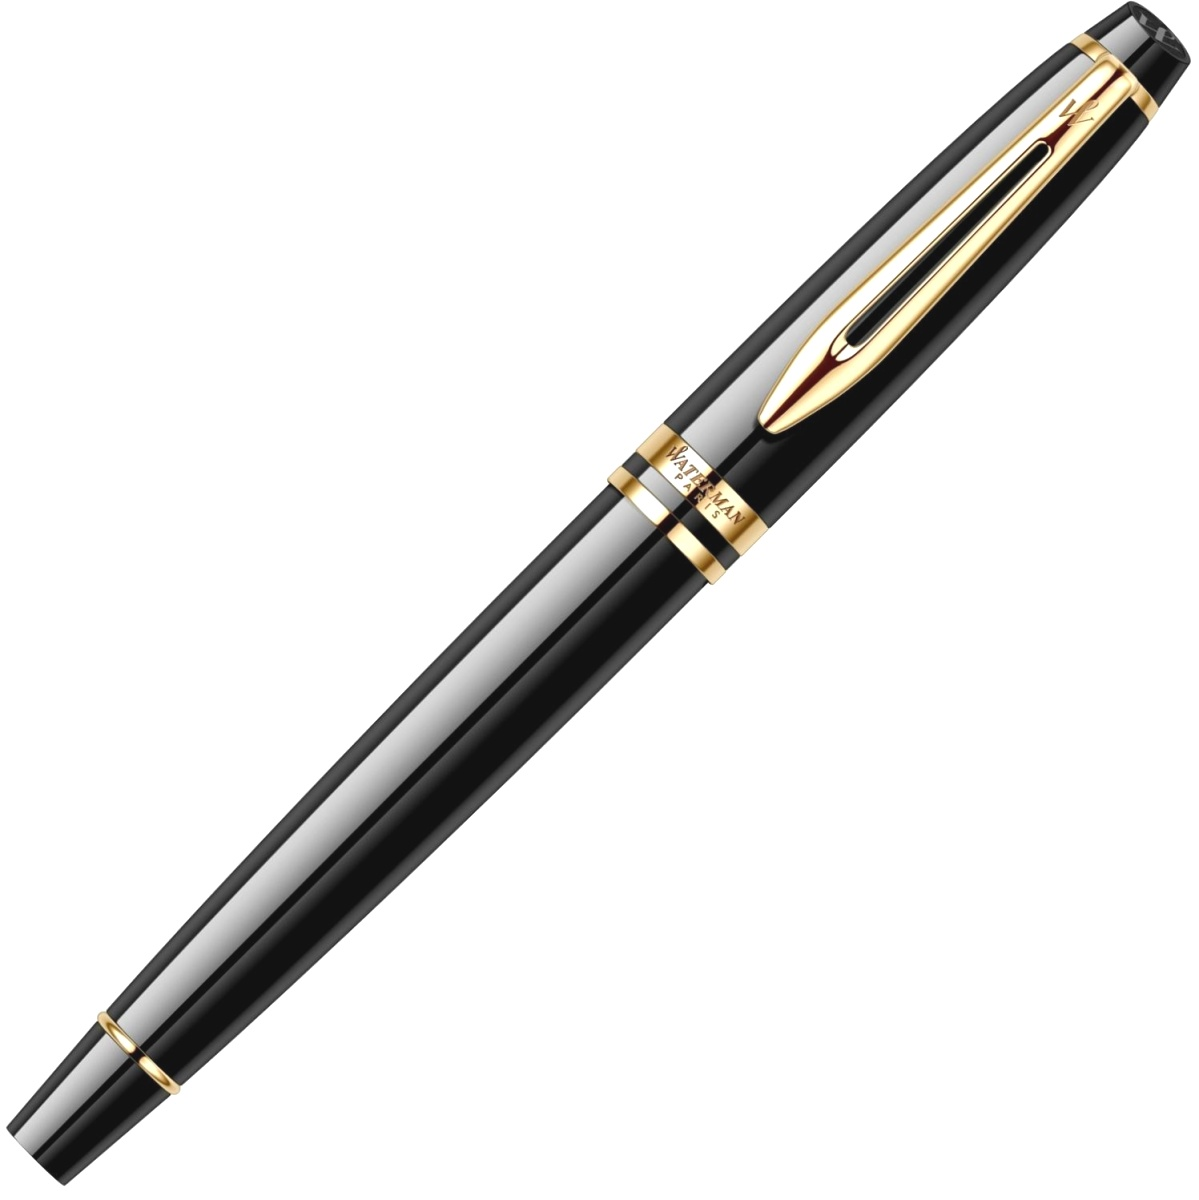 Ручка-роллер Waterman Expert 3 Essential, Laque Black GT, фото 4